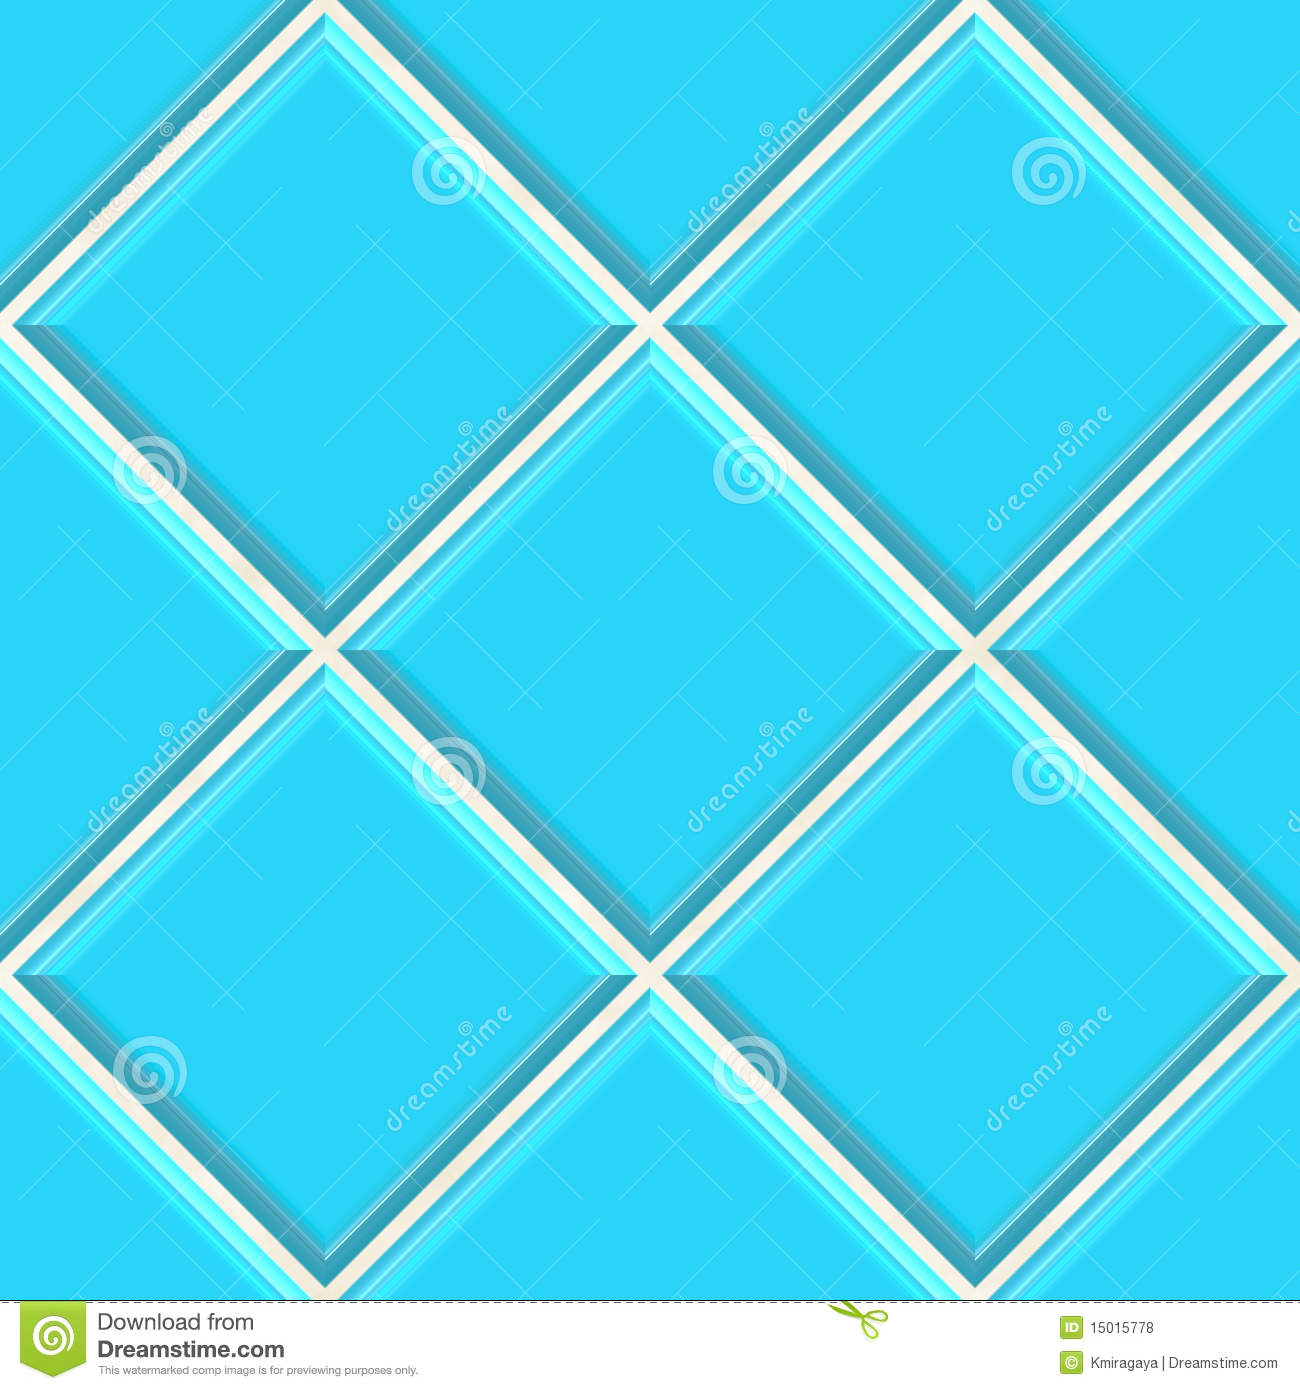 Seamless Blue Tiles Texture Background Royalty Free Stock